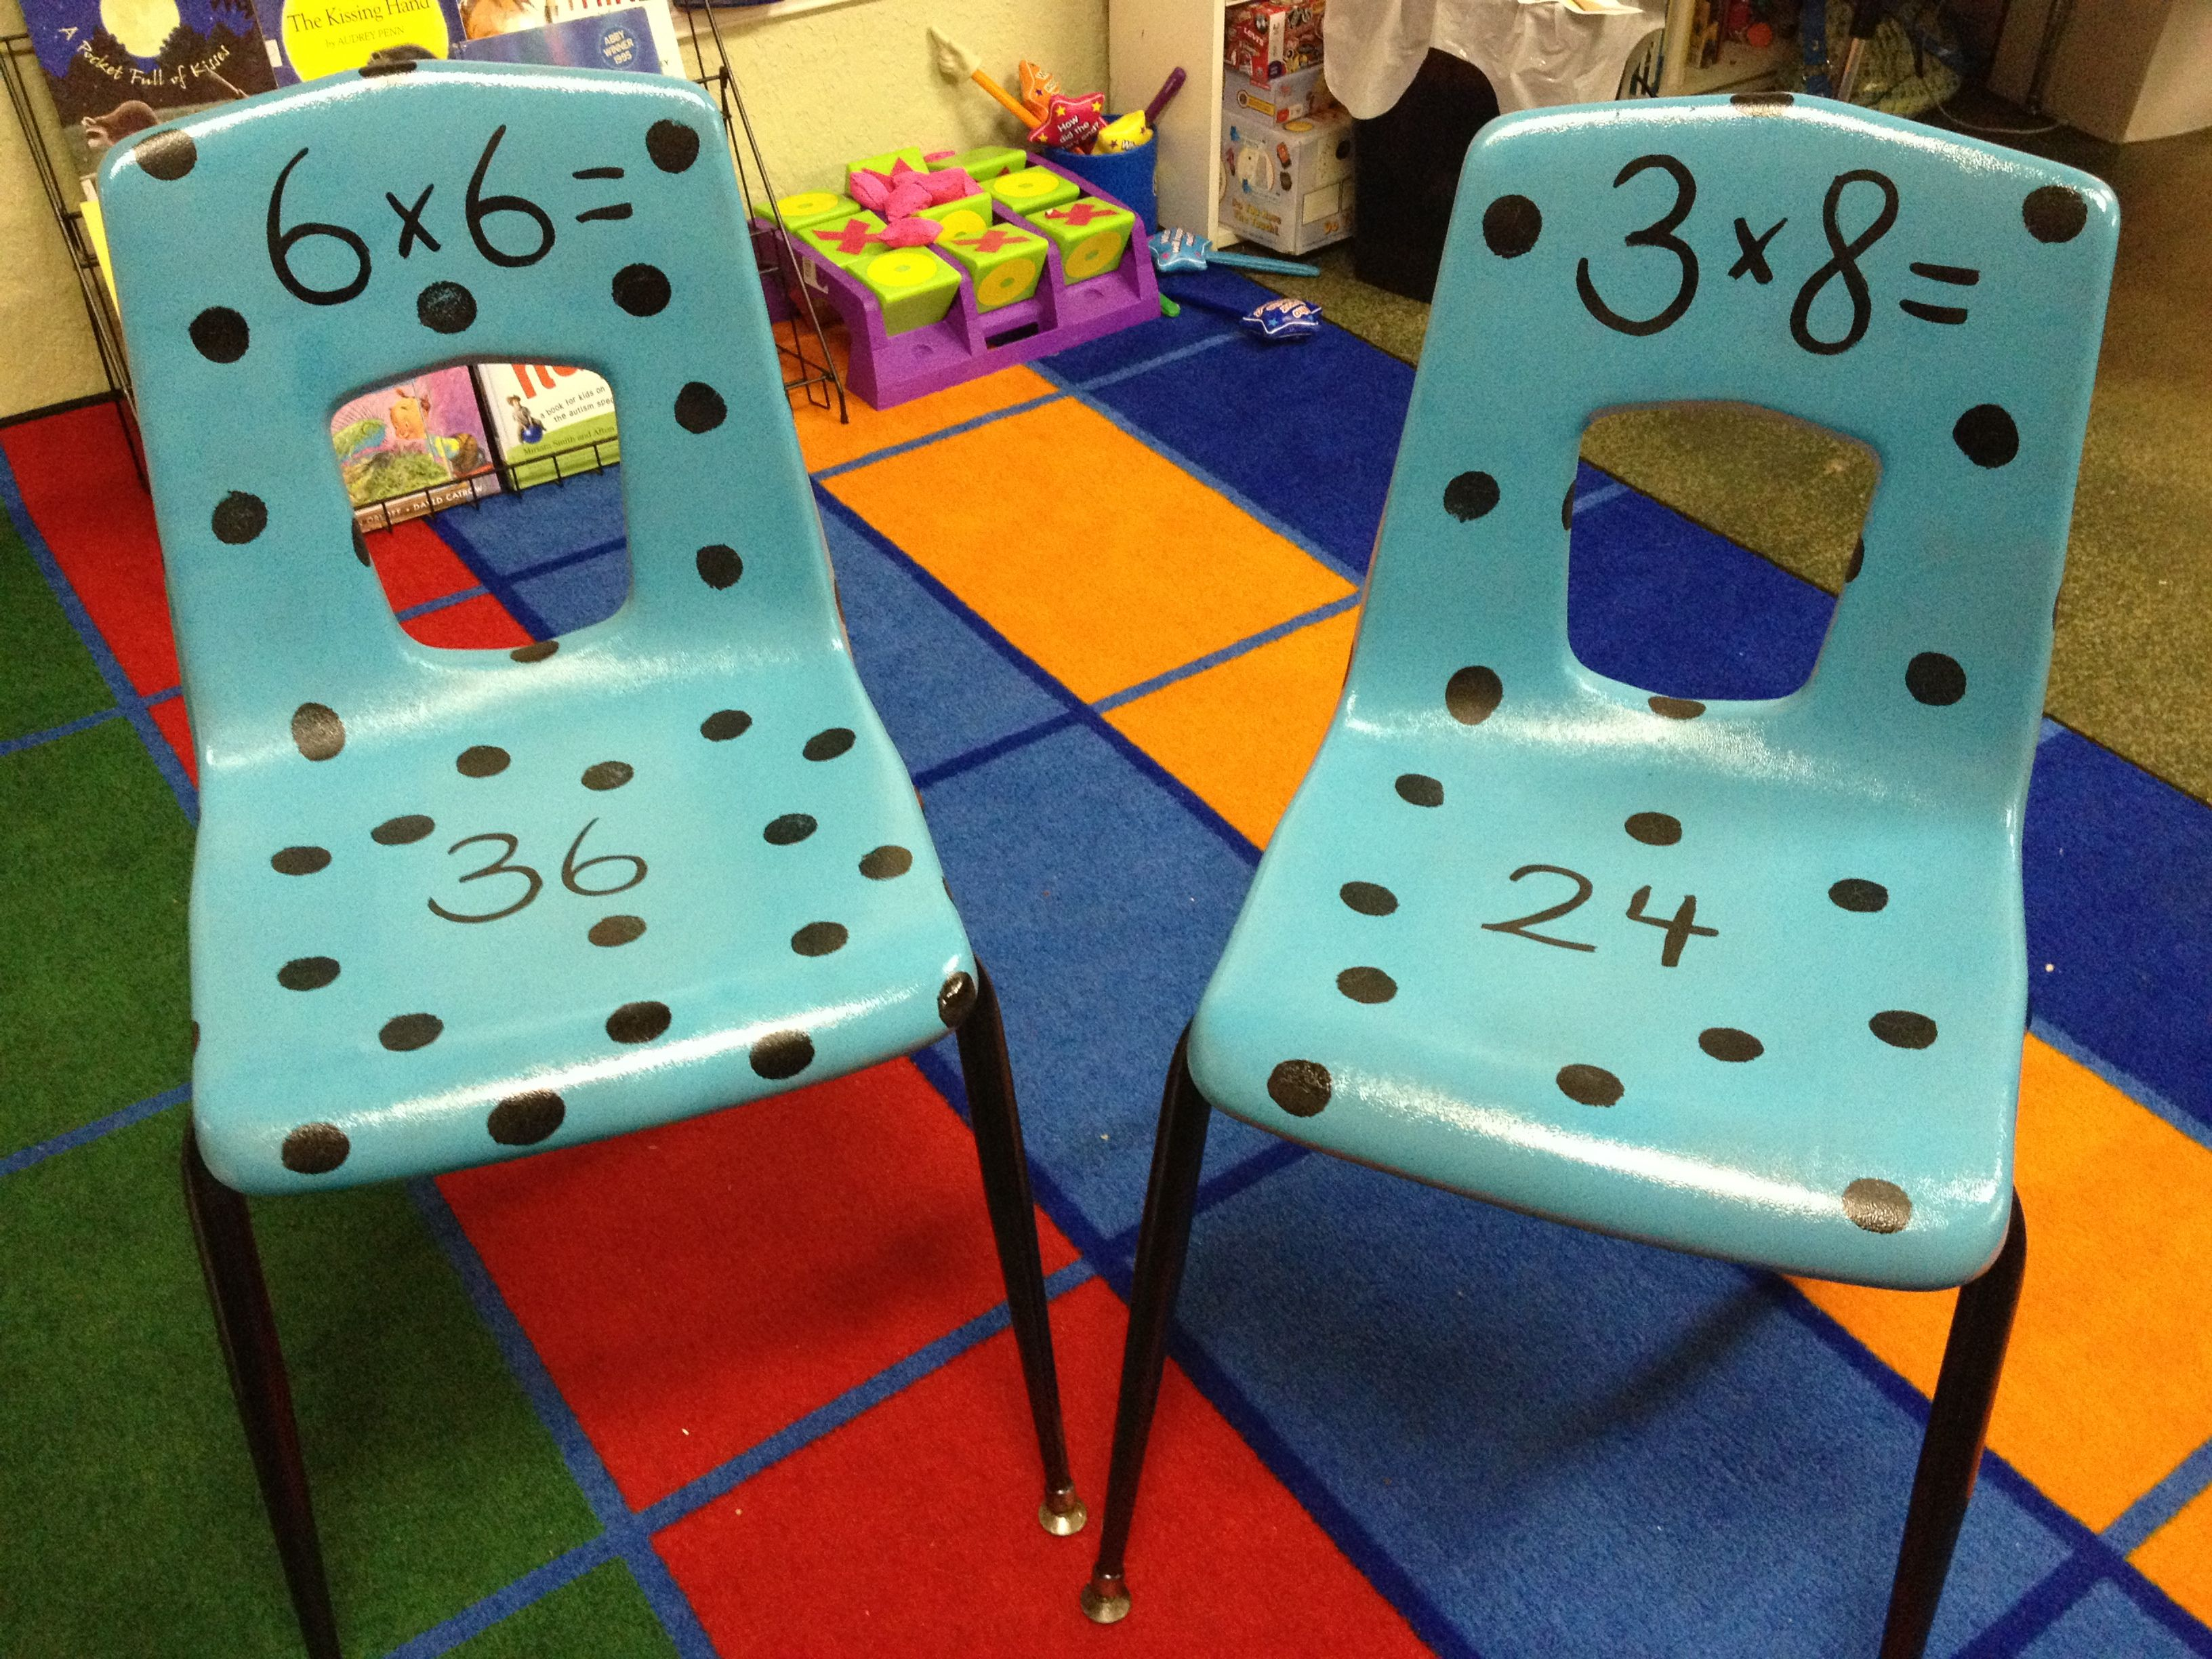 Multiplication Exposure Along With Visual Comparison Of